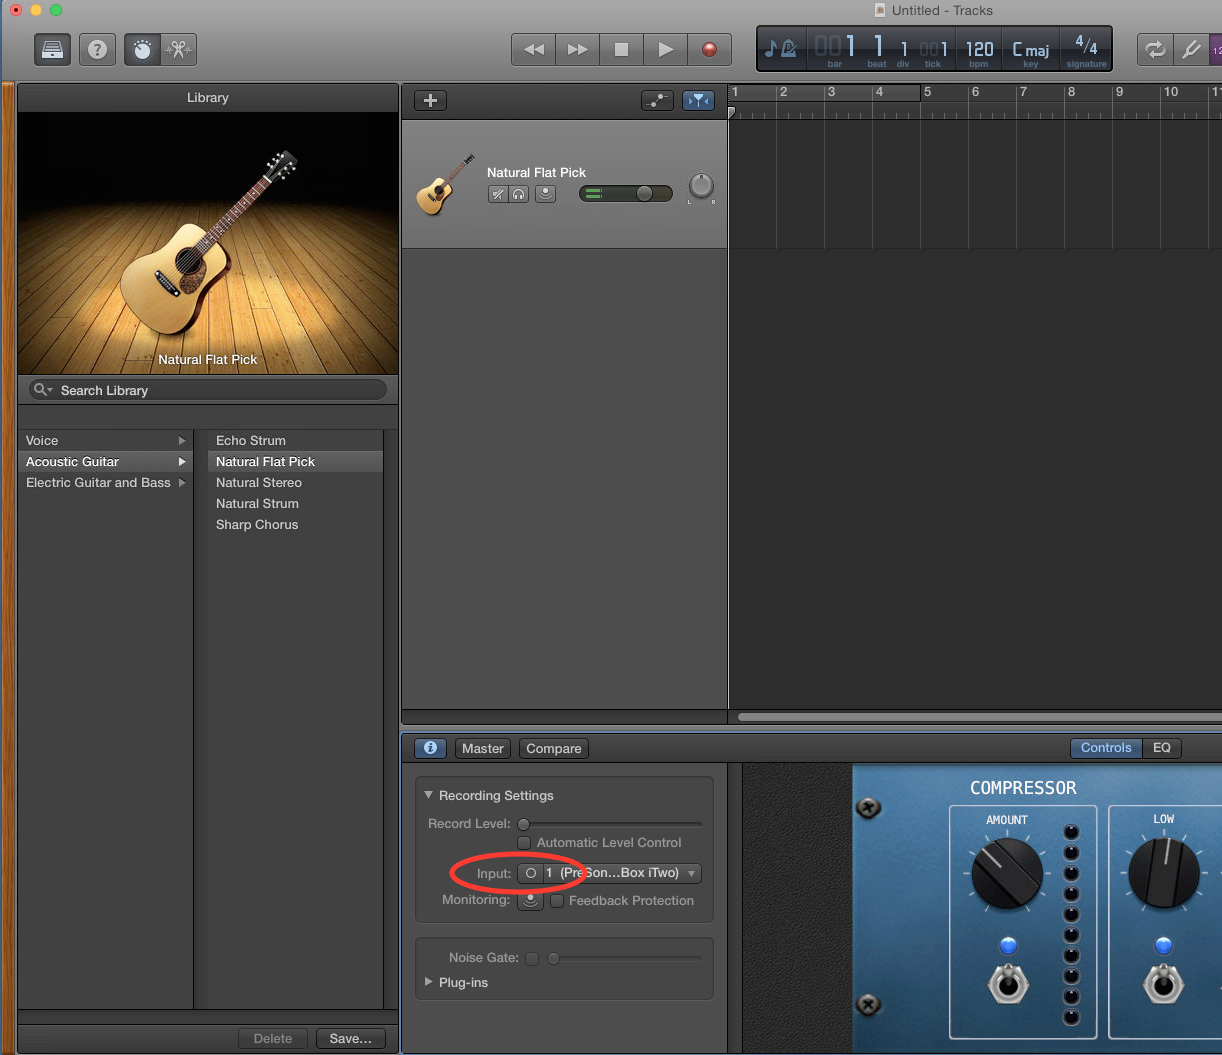 Why can't I add my Waves SIgnature plugins to my mono track in